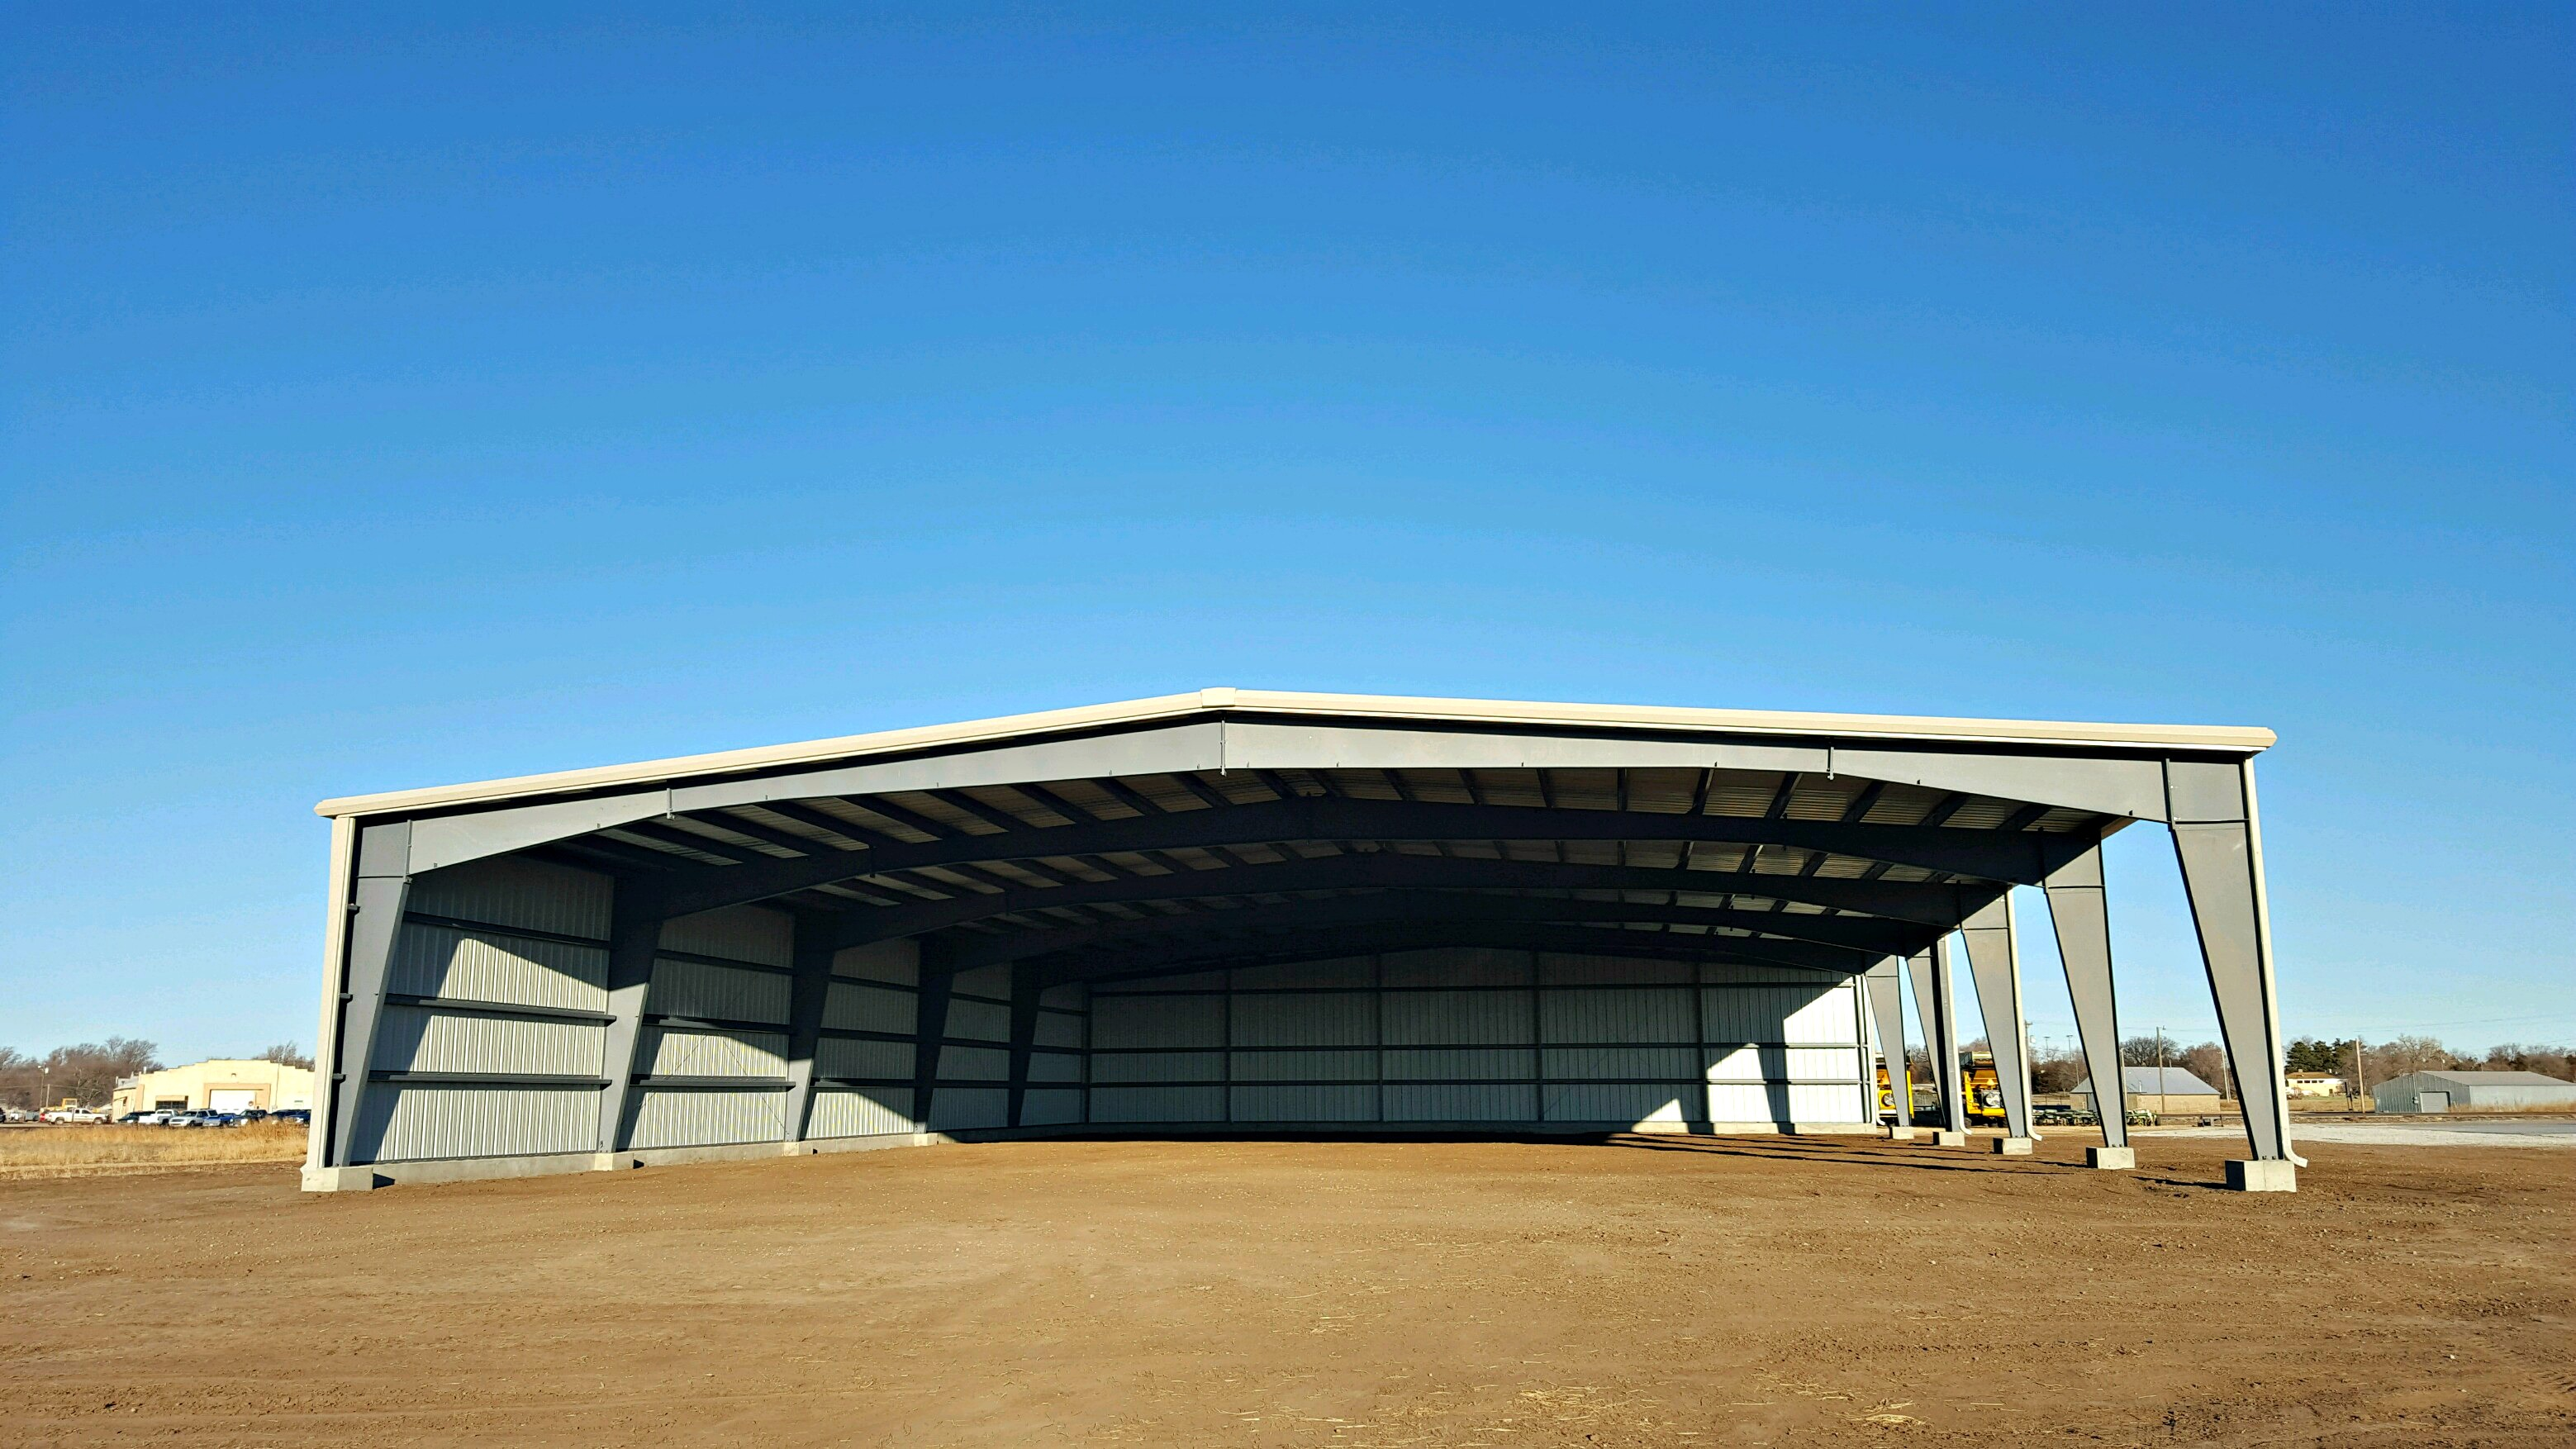 80' x 120' x 16' All Steel Building